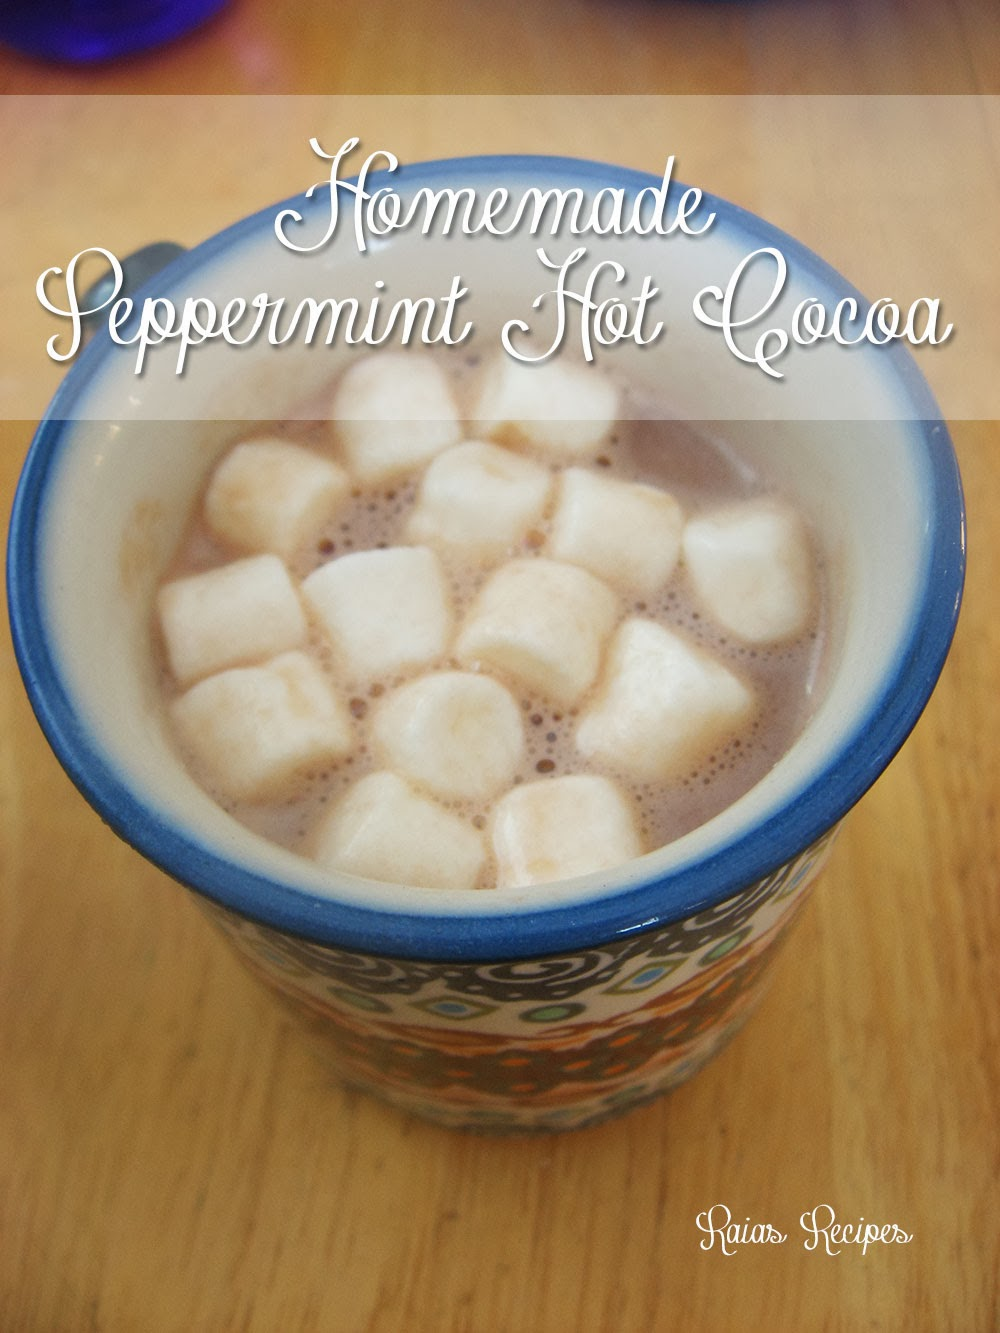 Homemade Peppermint Hot Cocoa by Raia's Recipes